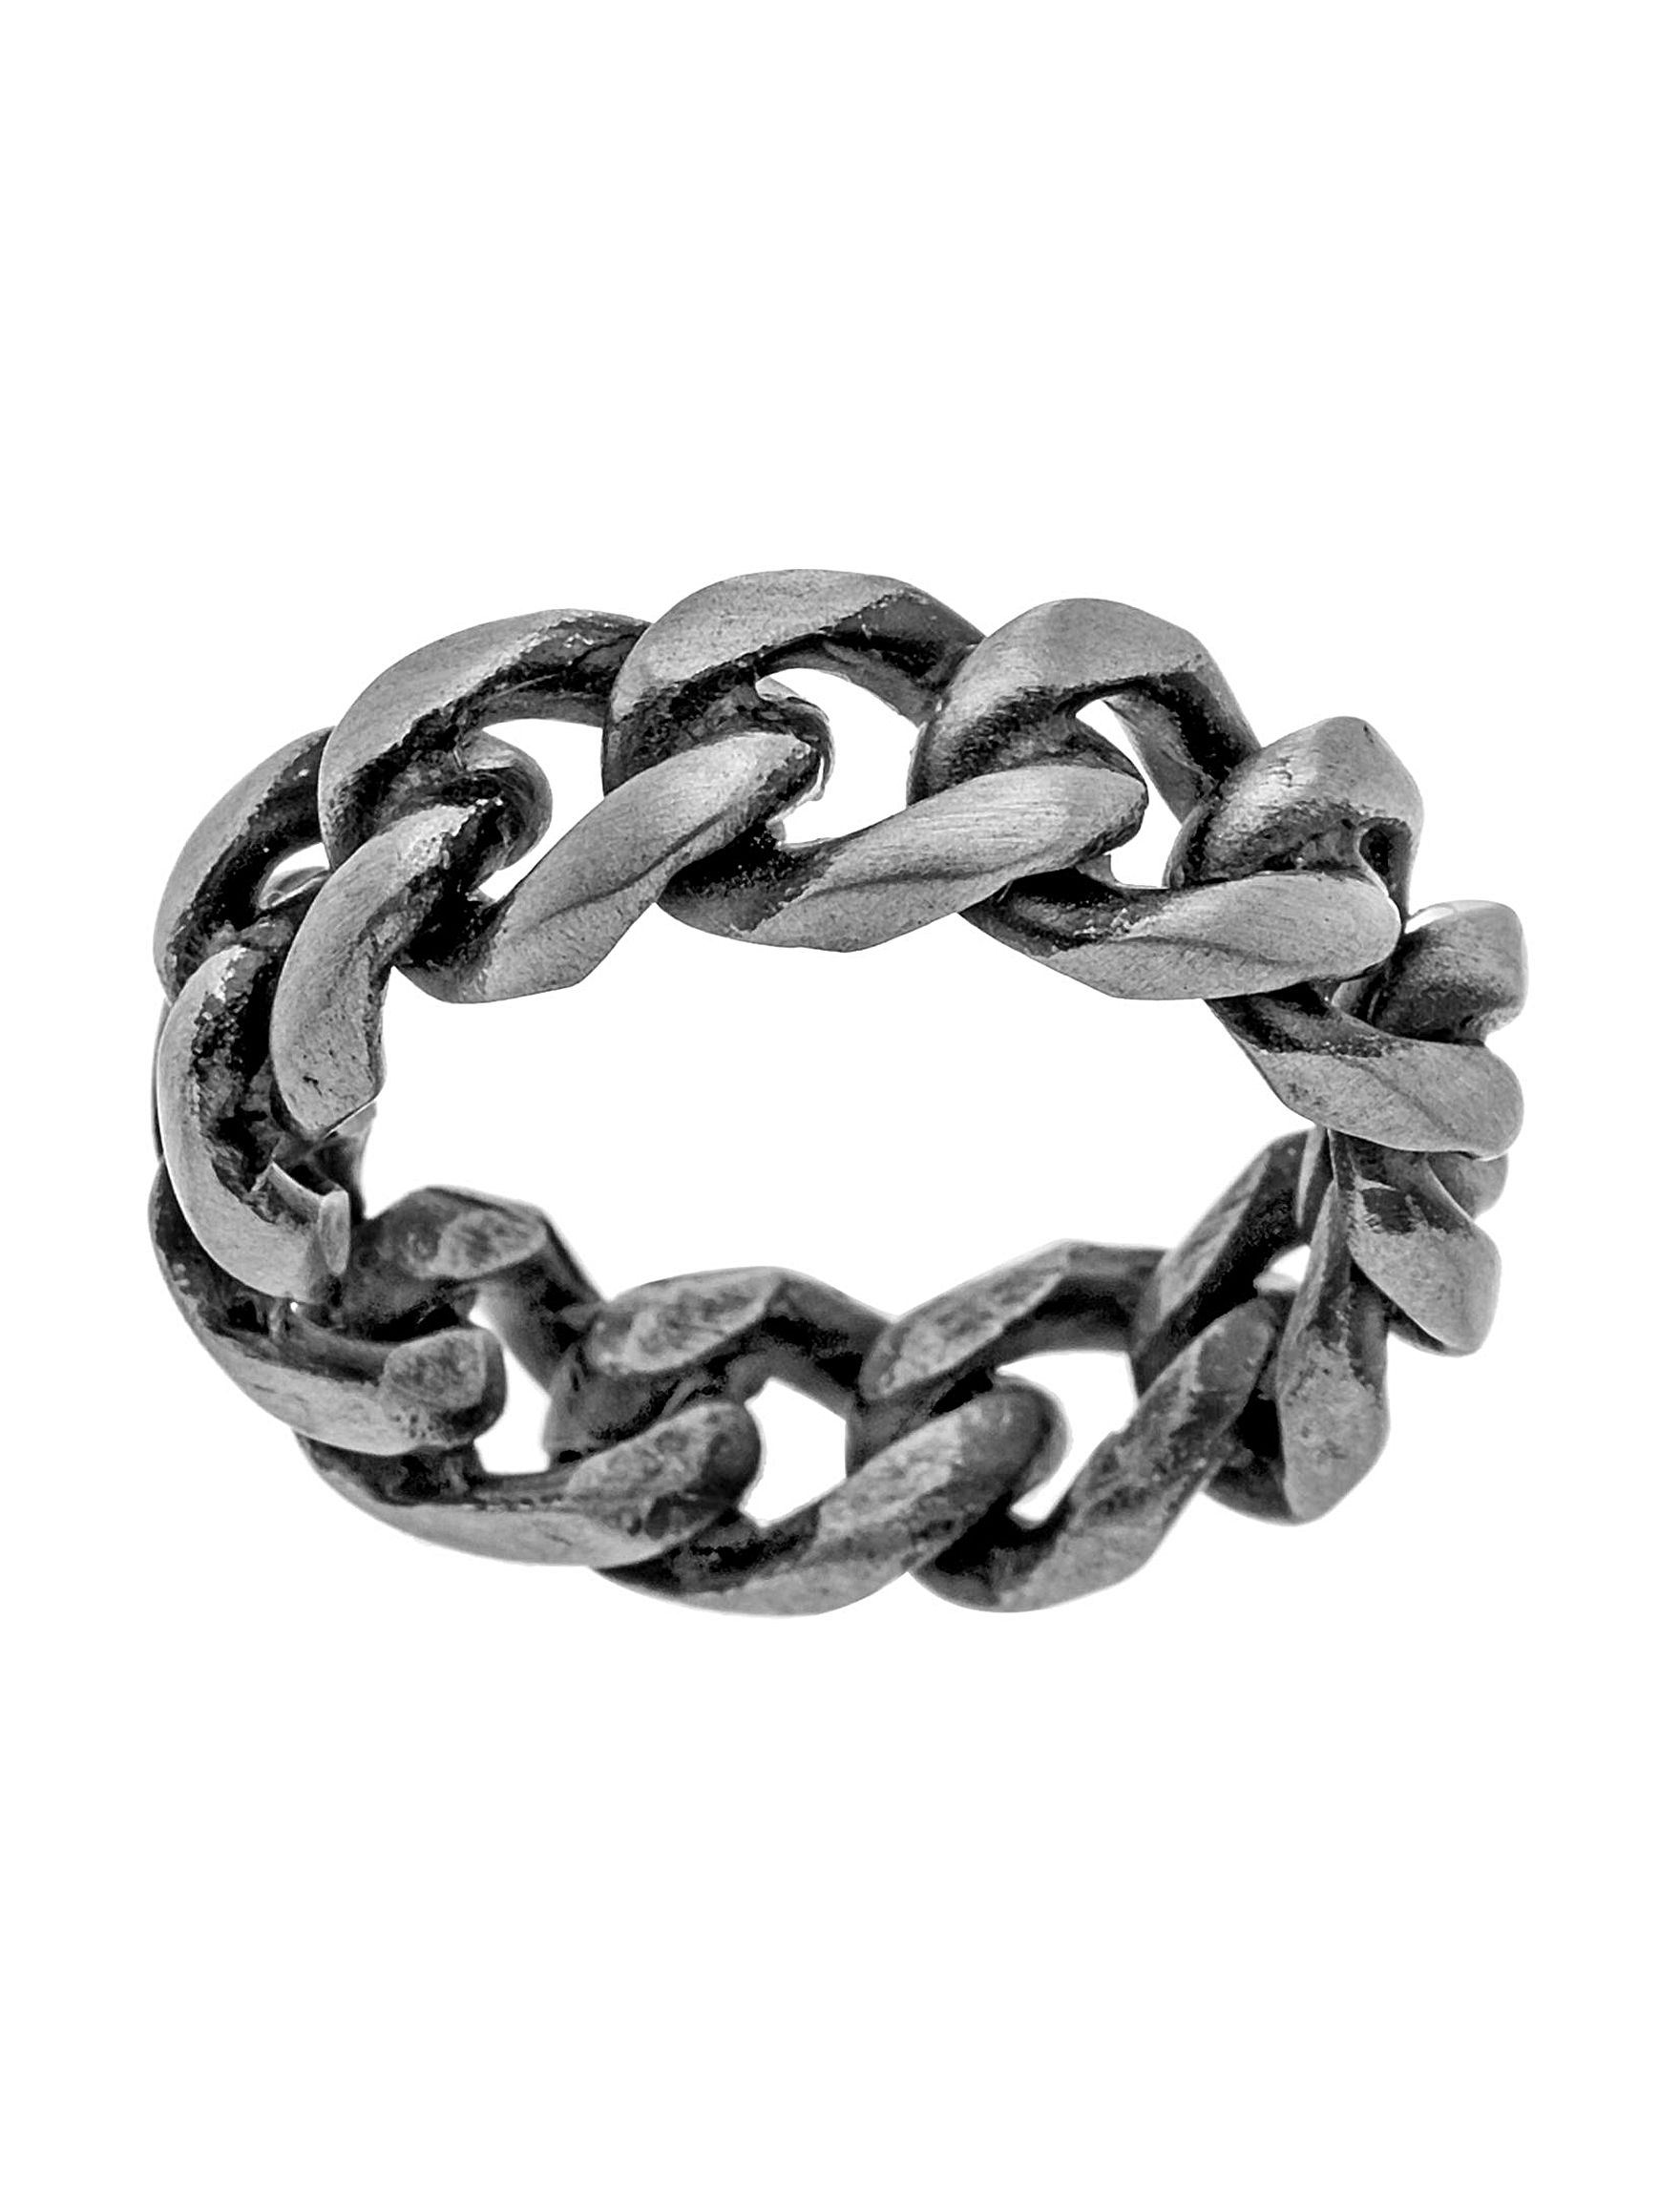 NES Stainless Steel Rings Fine Jewelry